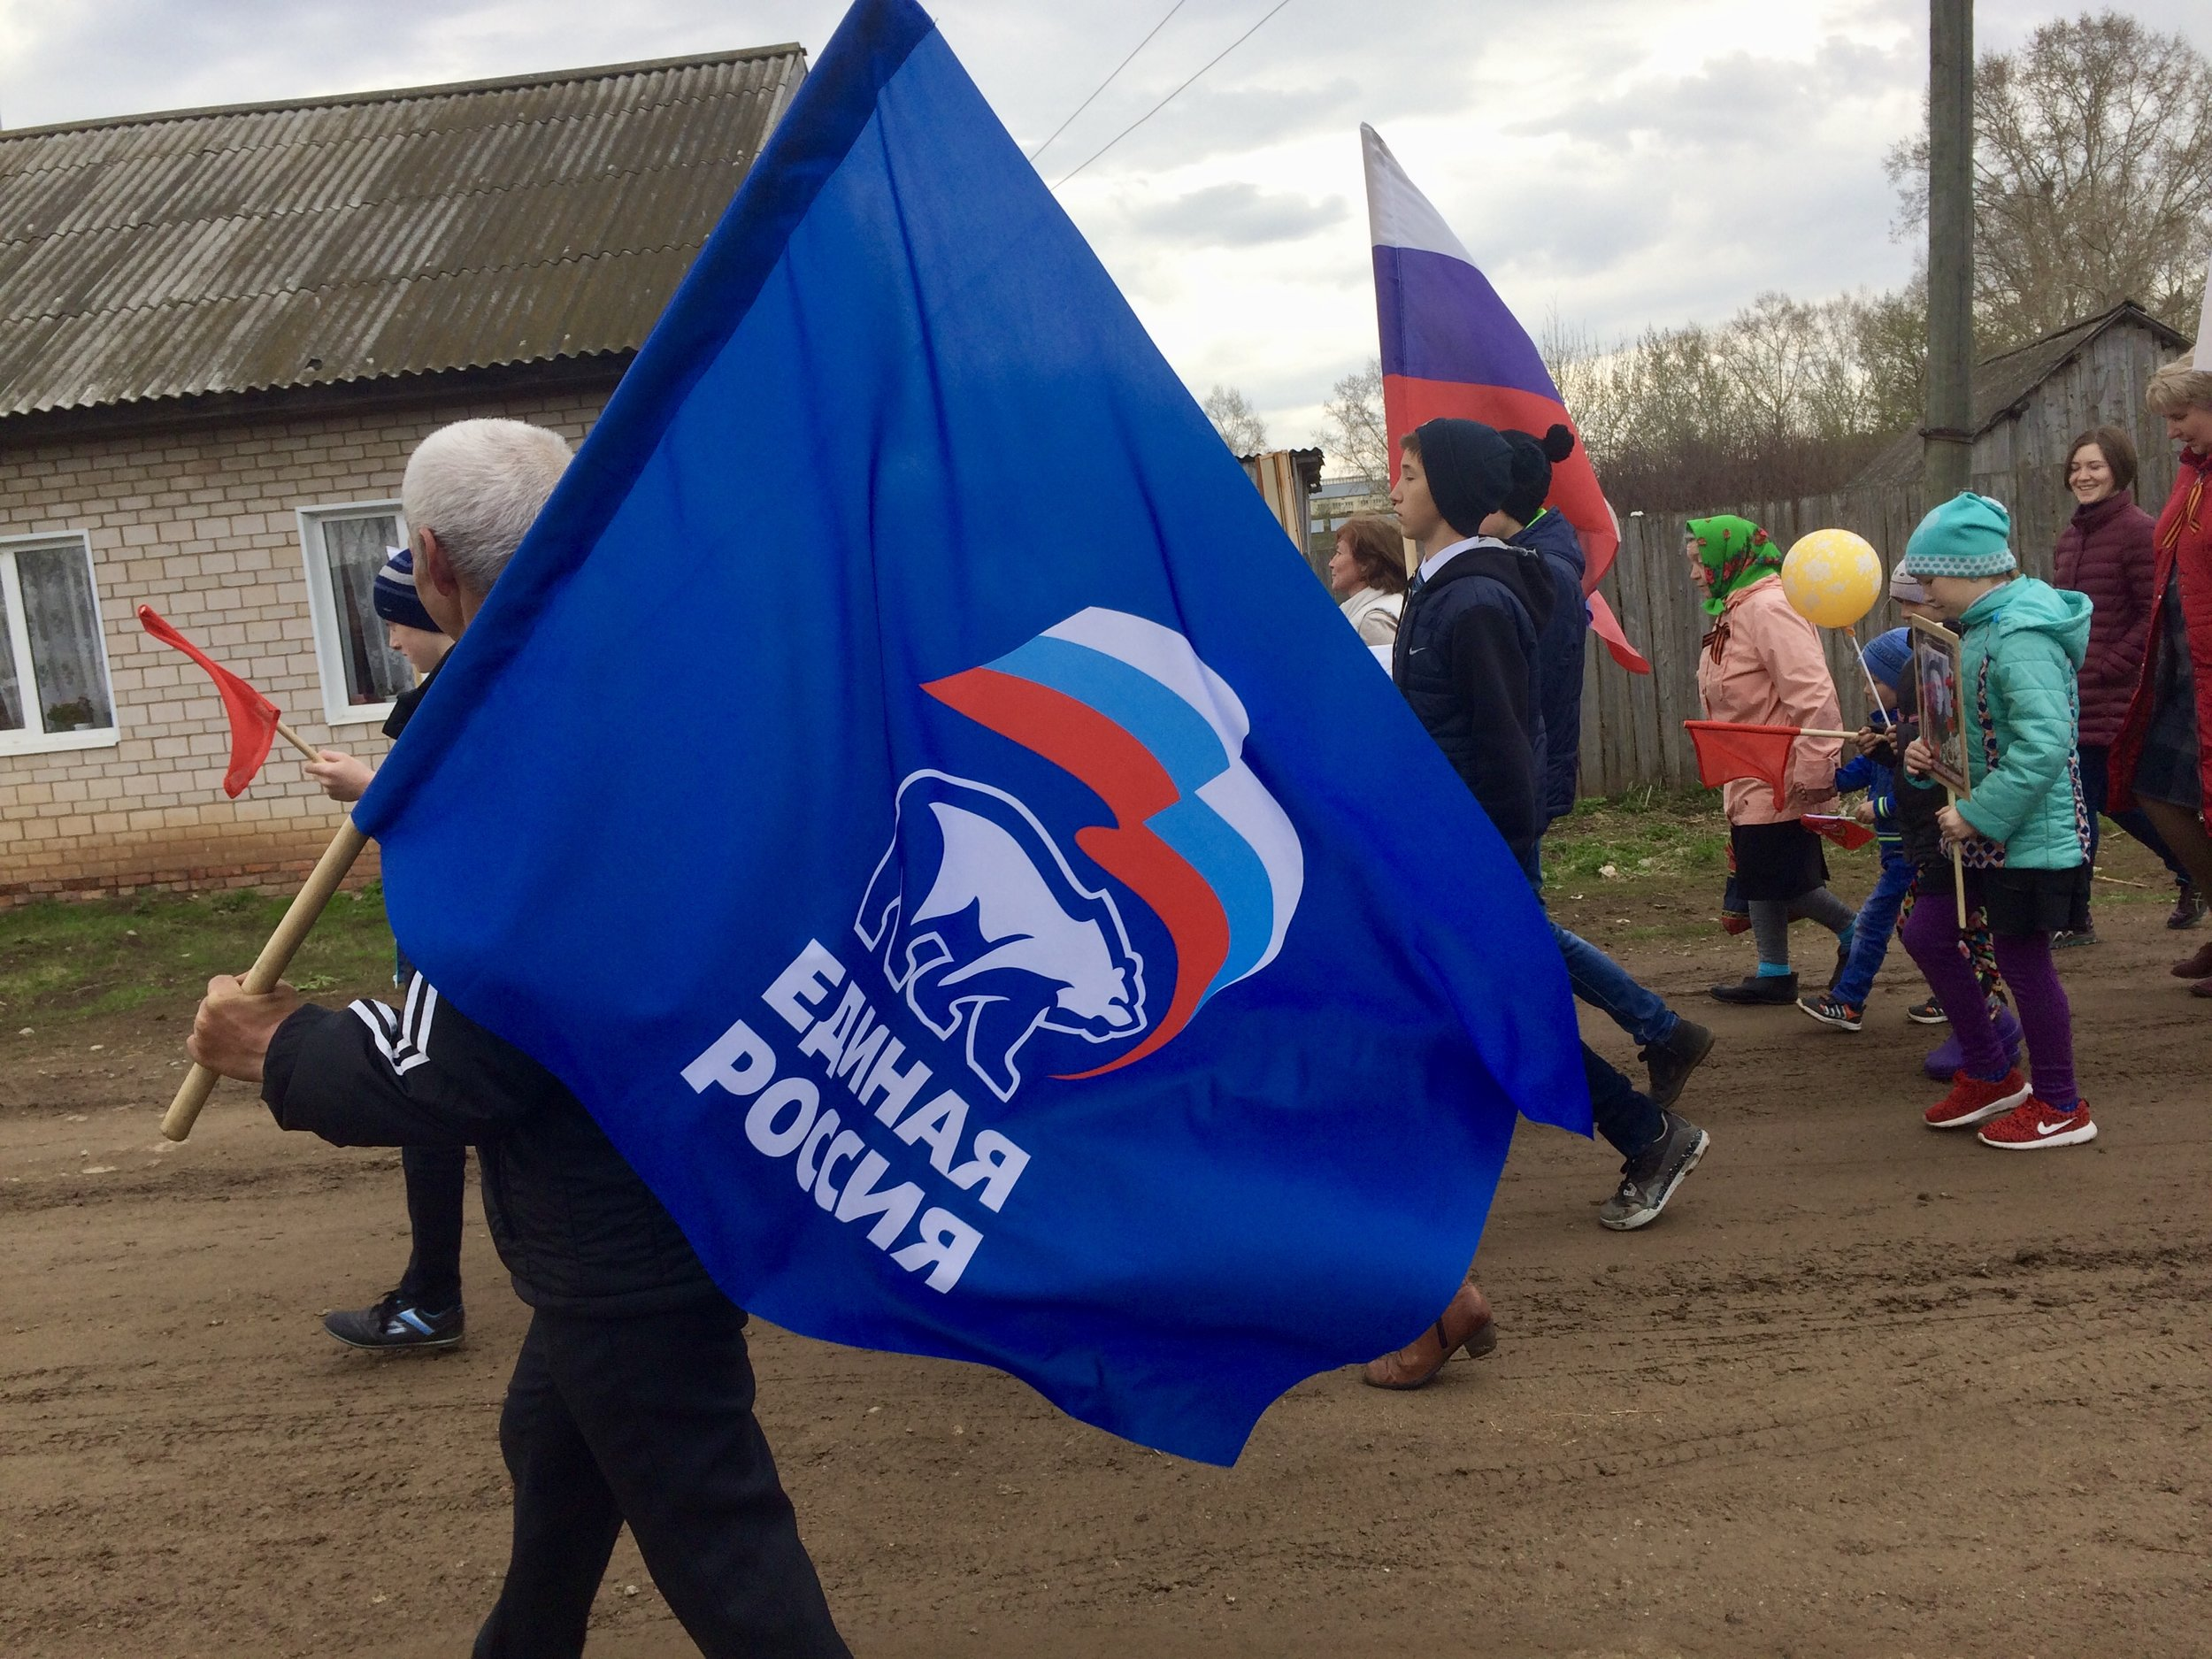 United Russia's flag on display at a Victory Day march in rural Russia, allegedly a national and non-political holiday.